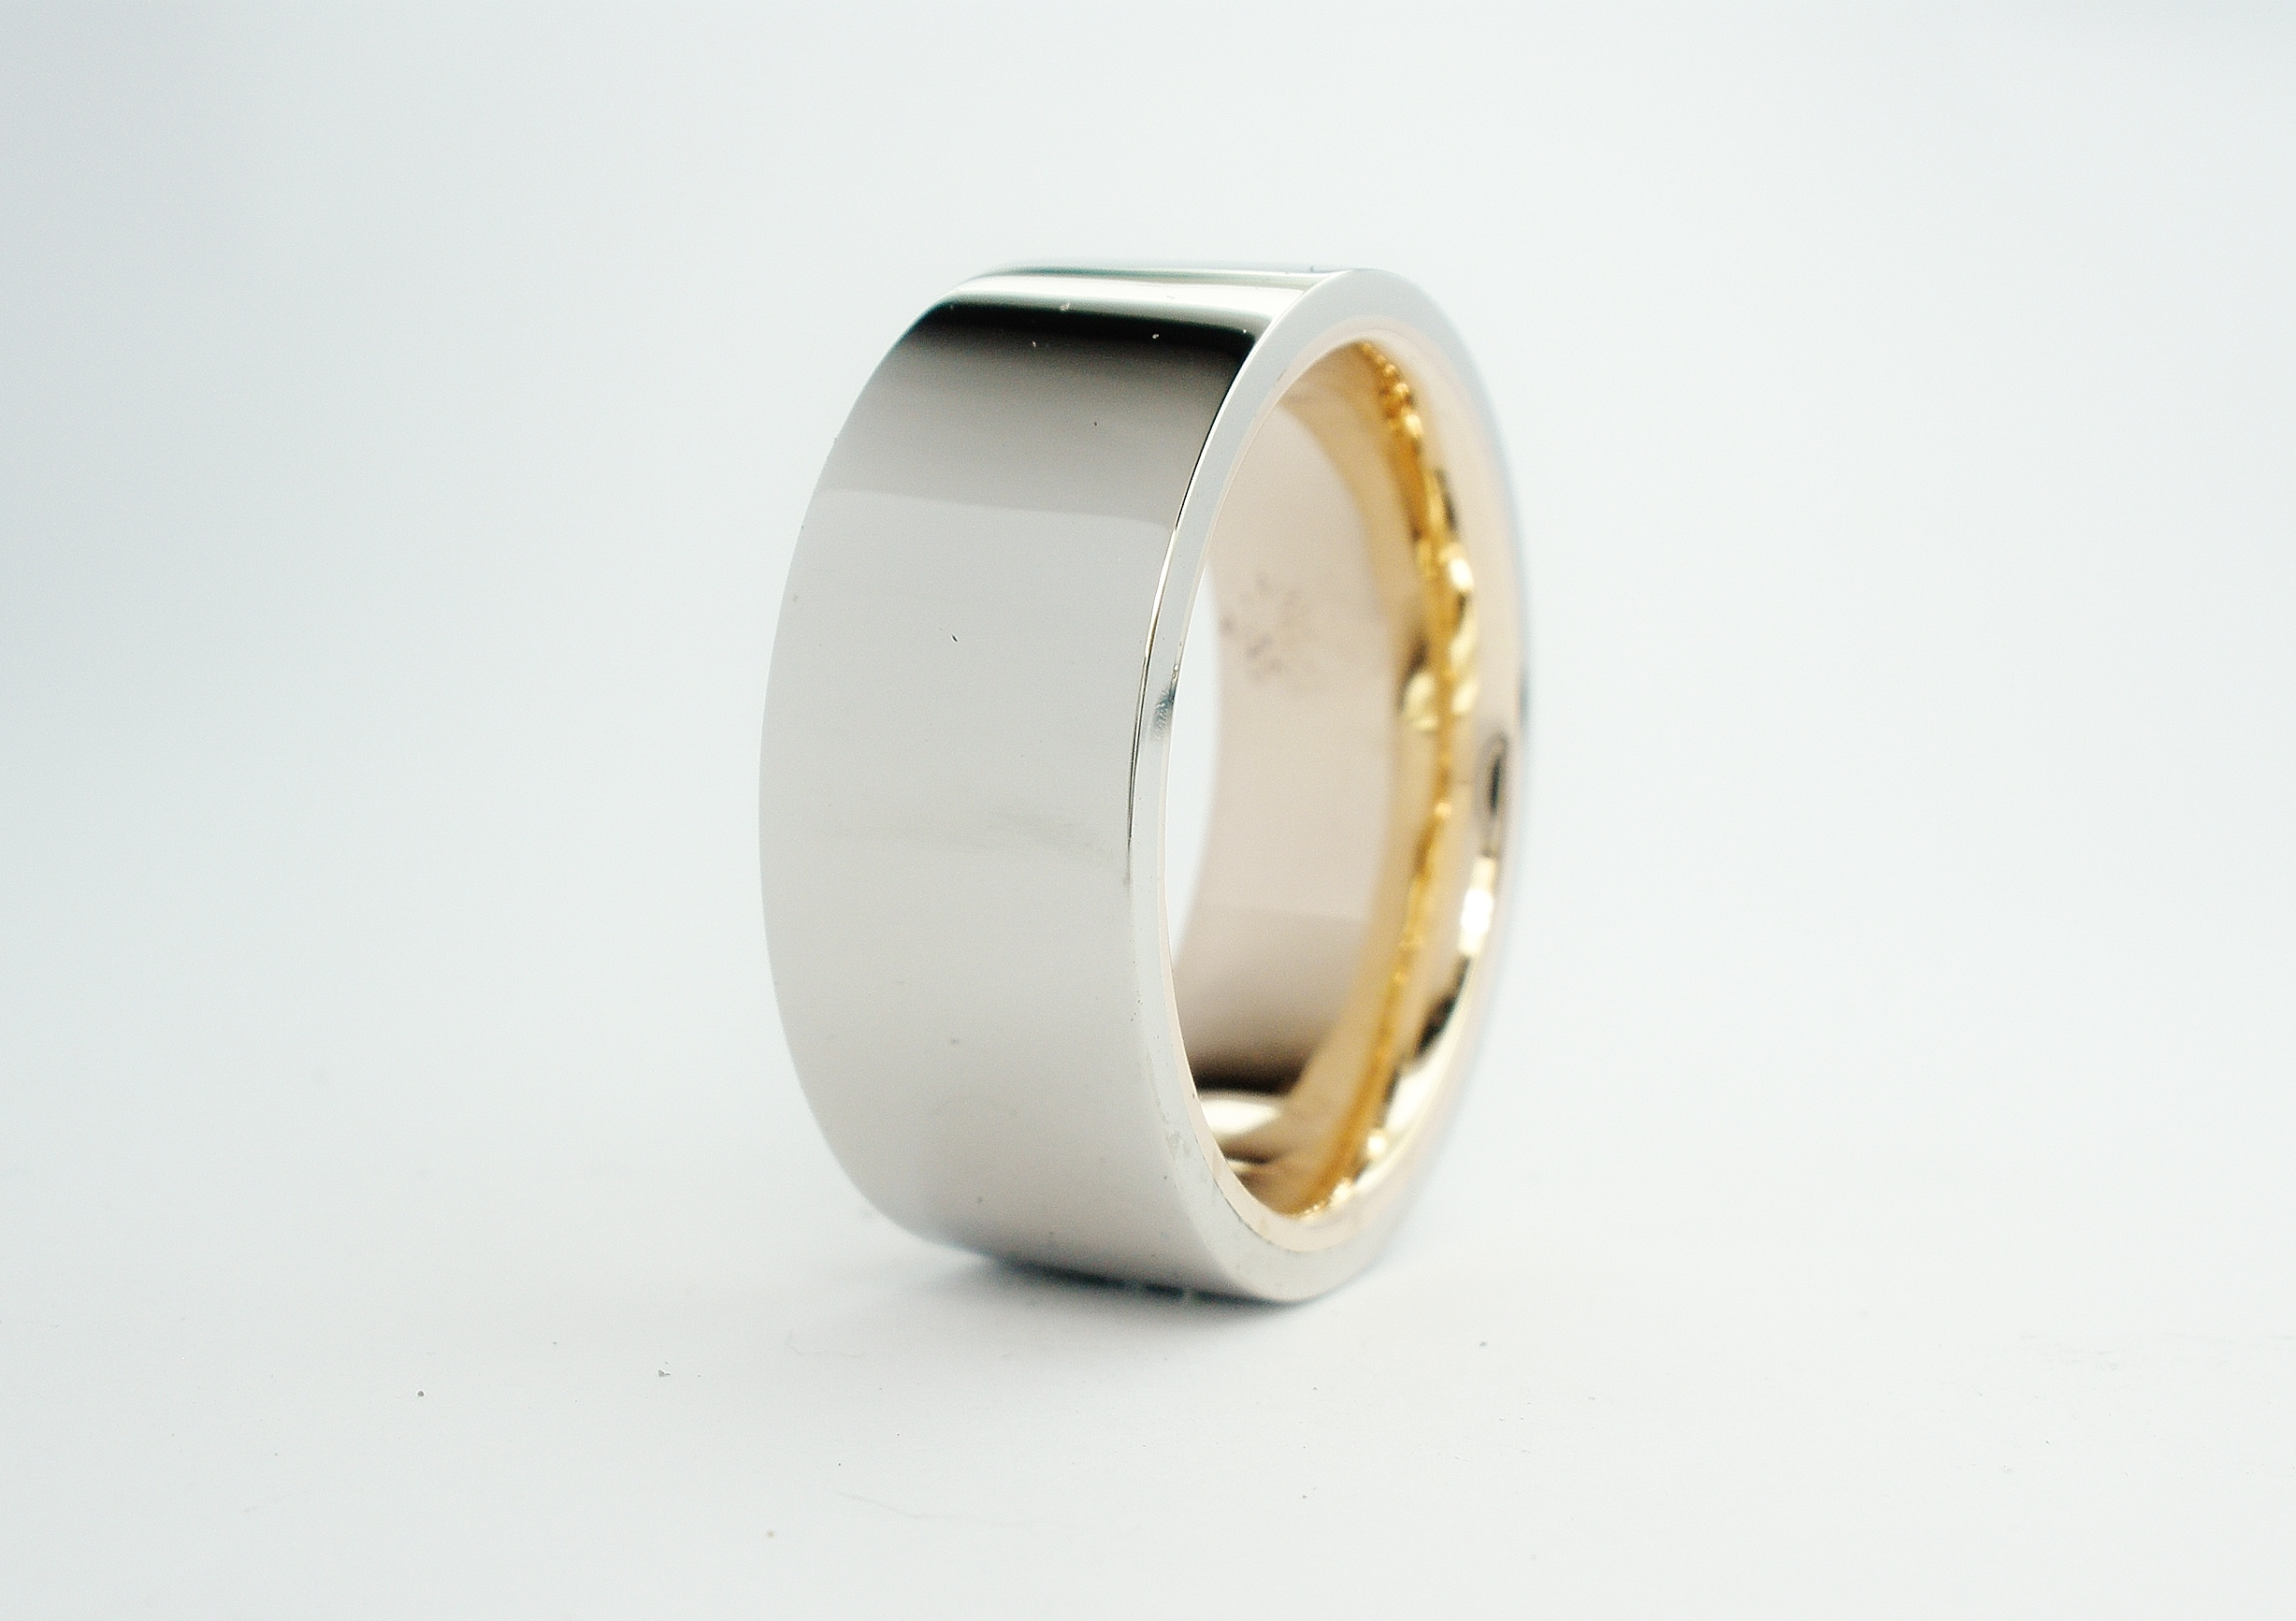 The gentleman had his father's 9ct. yellow gold wedding ring which he wished incorporated into his wedding ring which was to be visually white metal. The thickness and width of the father's ring allowed Alan to size the fathers ring to fit the client then overlay a palladium band. The 9ct yellow band is only visible when the ring is not being worn.